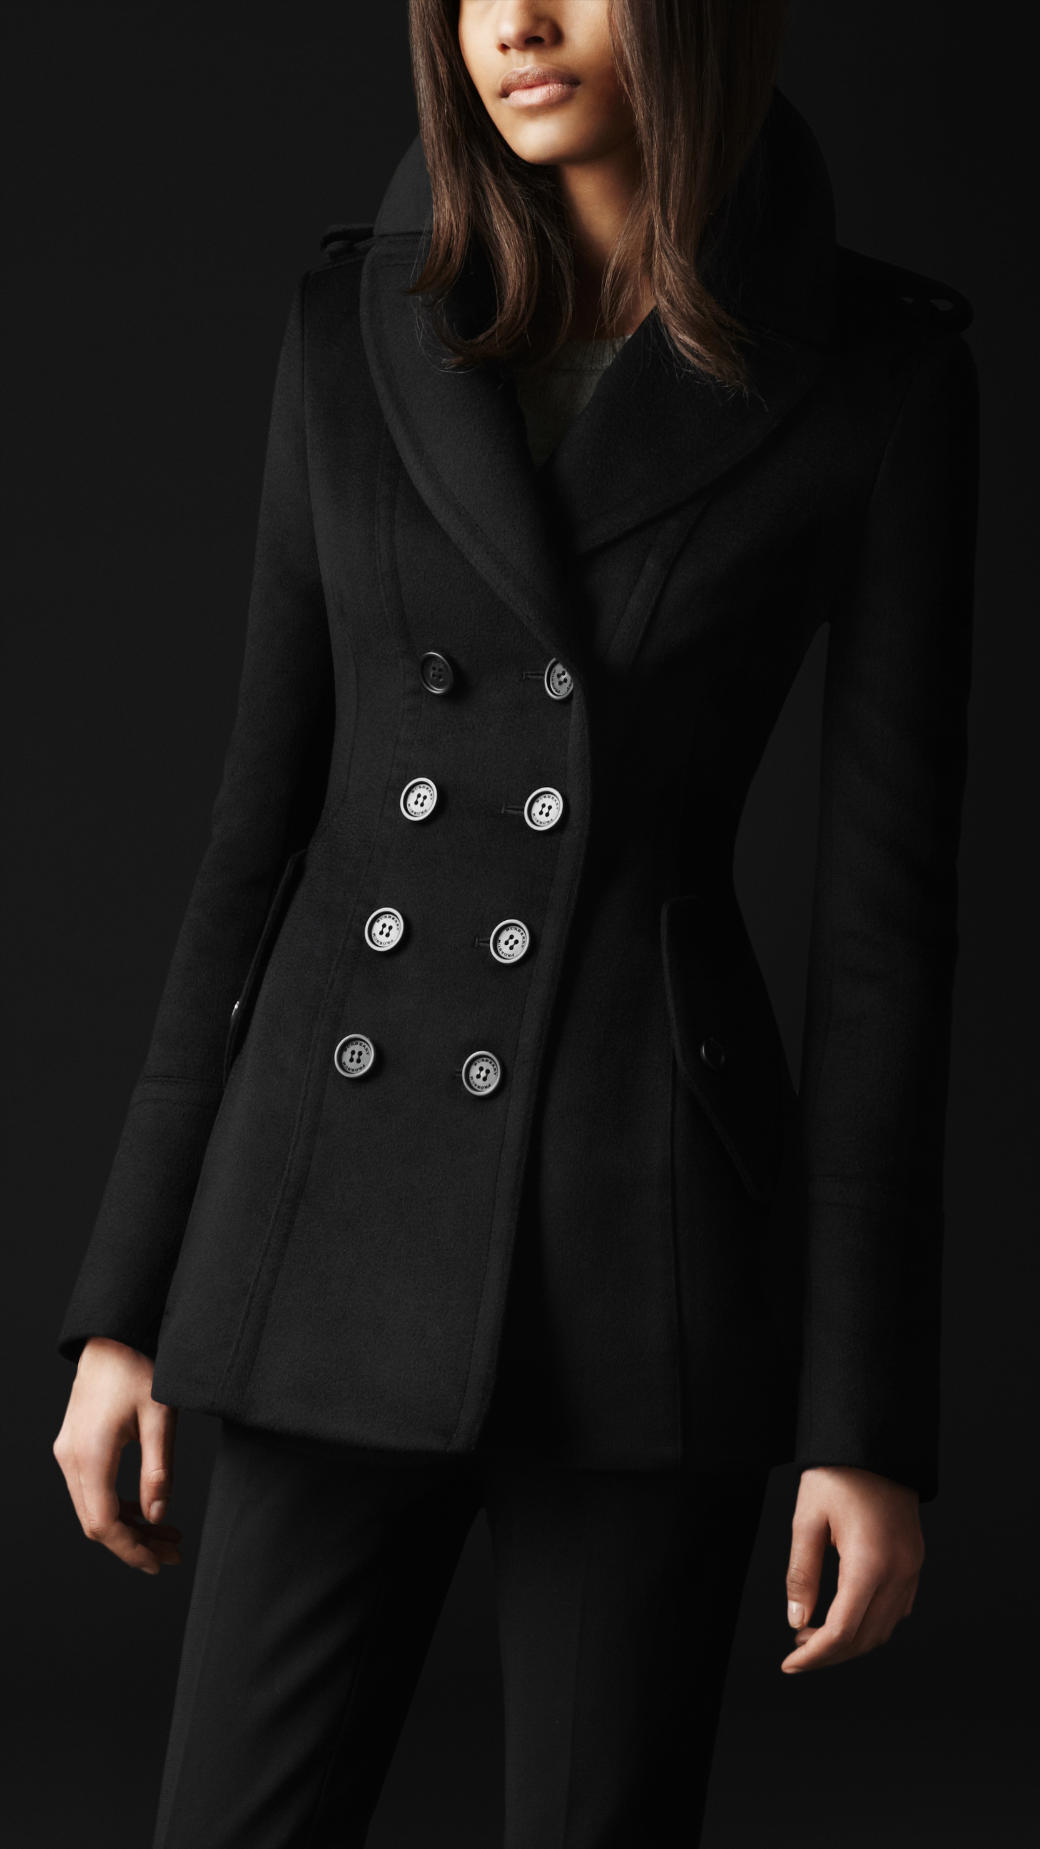 Burberry prorsum Wool Cashmere Tailored Coat in Black | Lyst